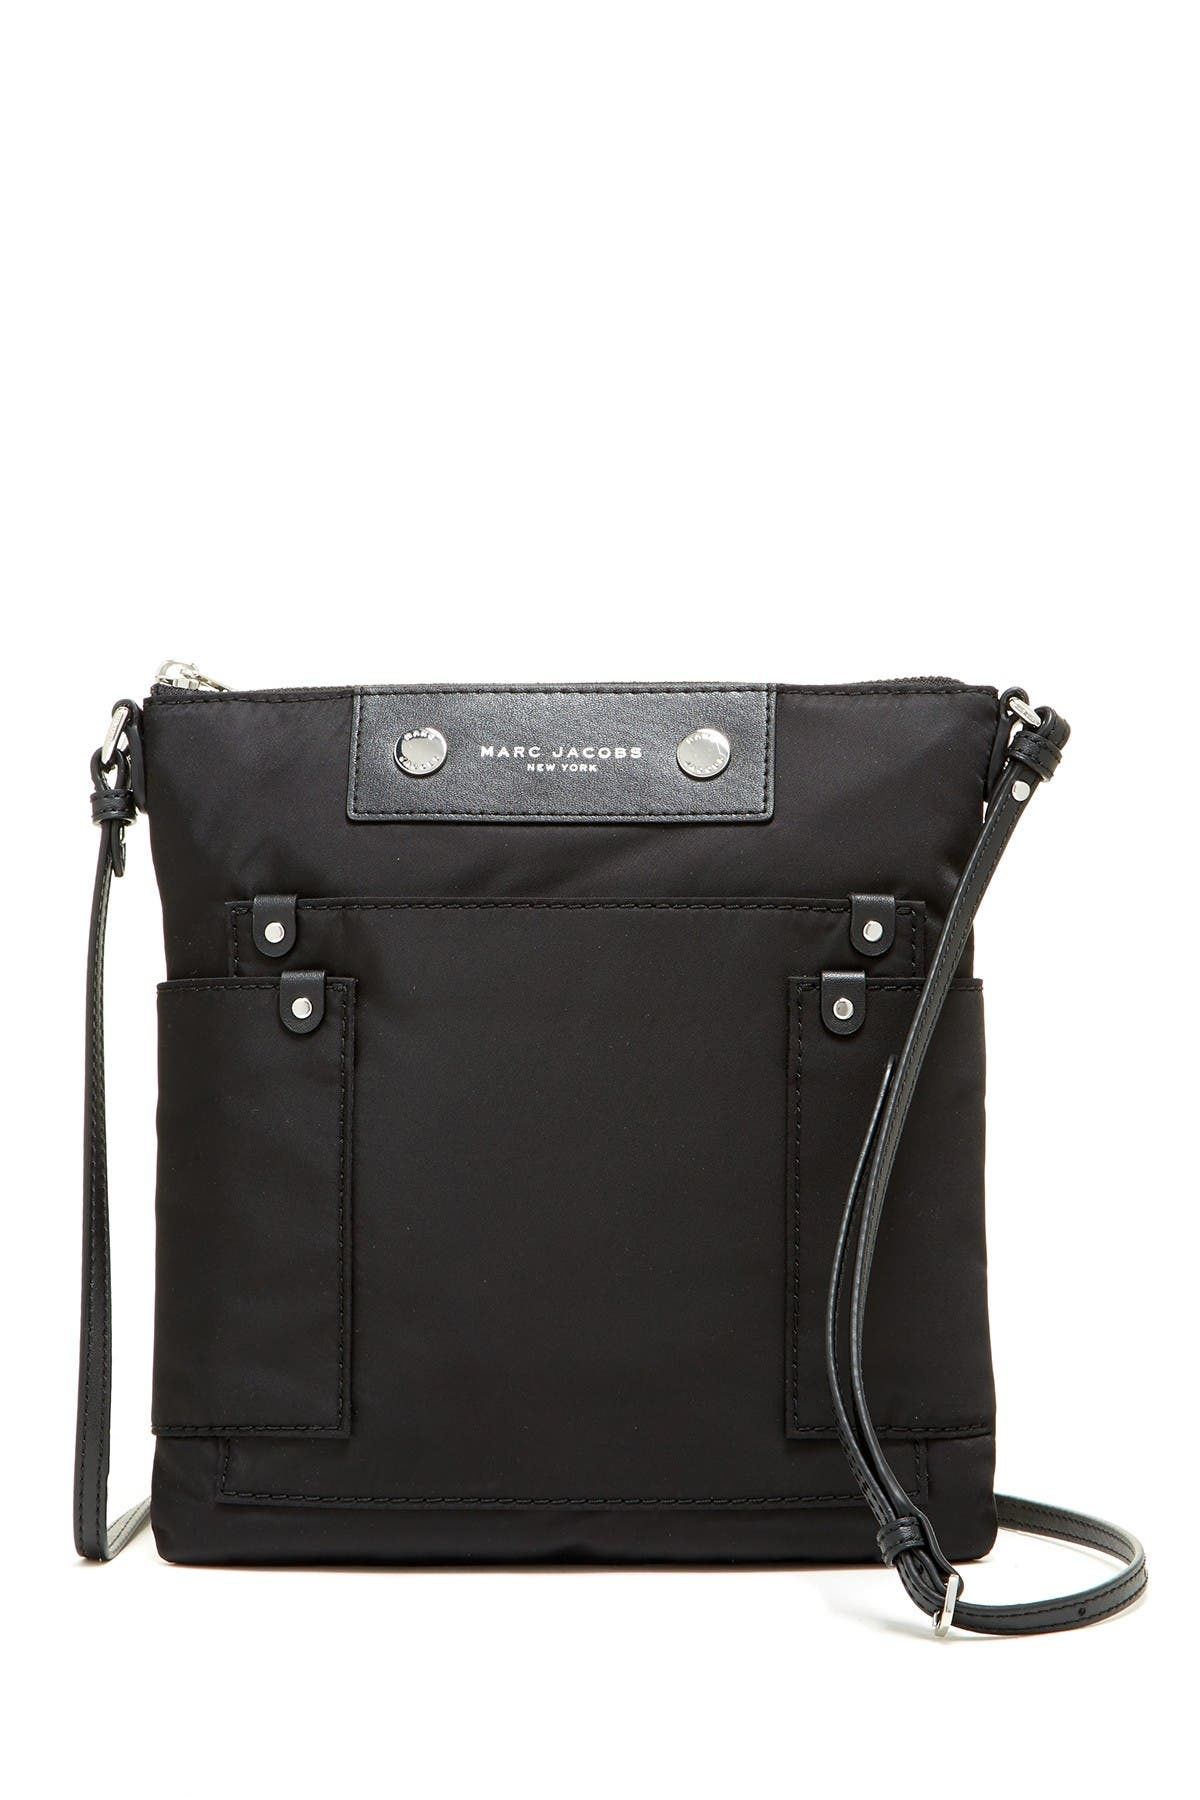 Image of Marc Jacobs Preppy Sia Crossbody Bag